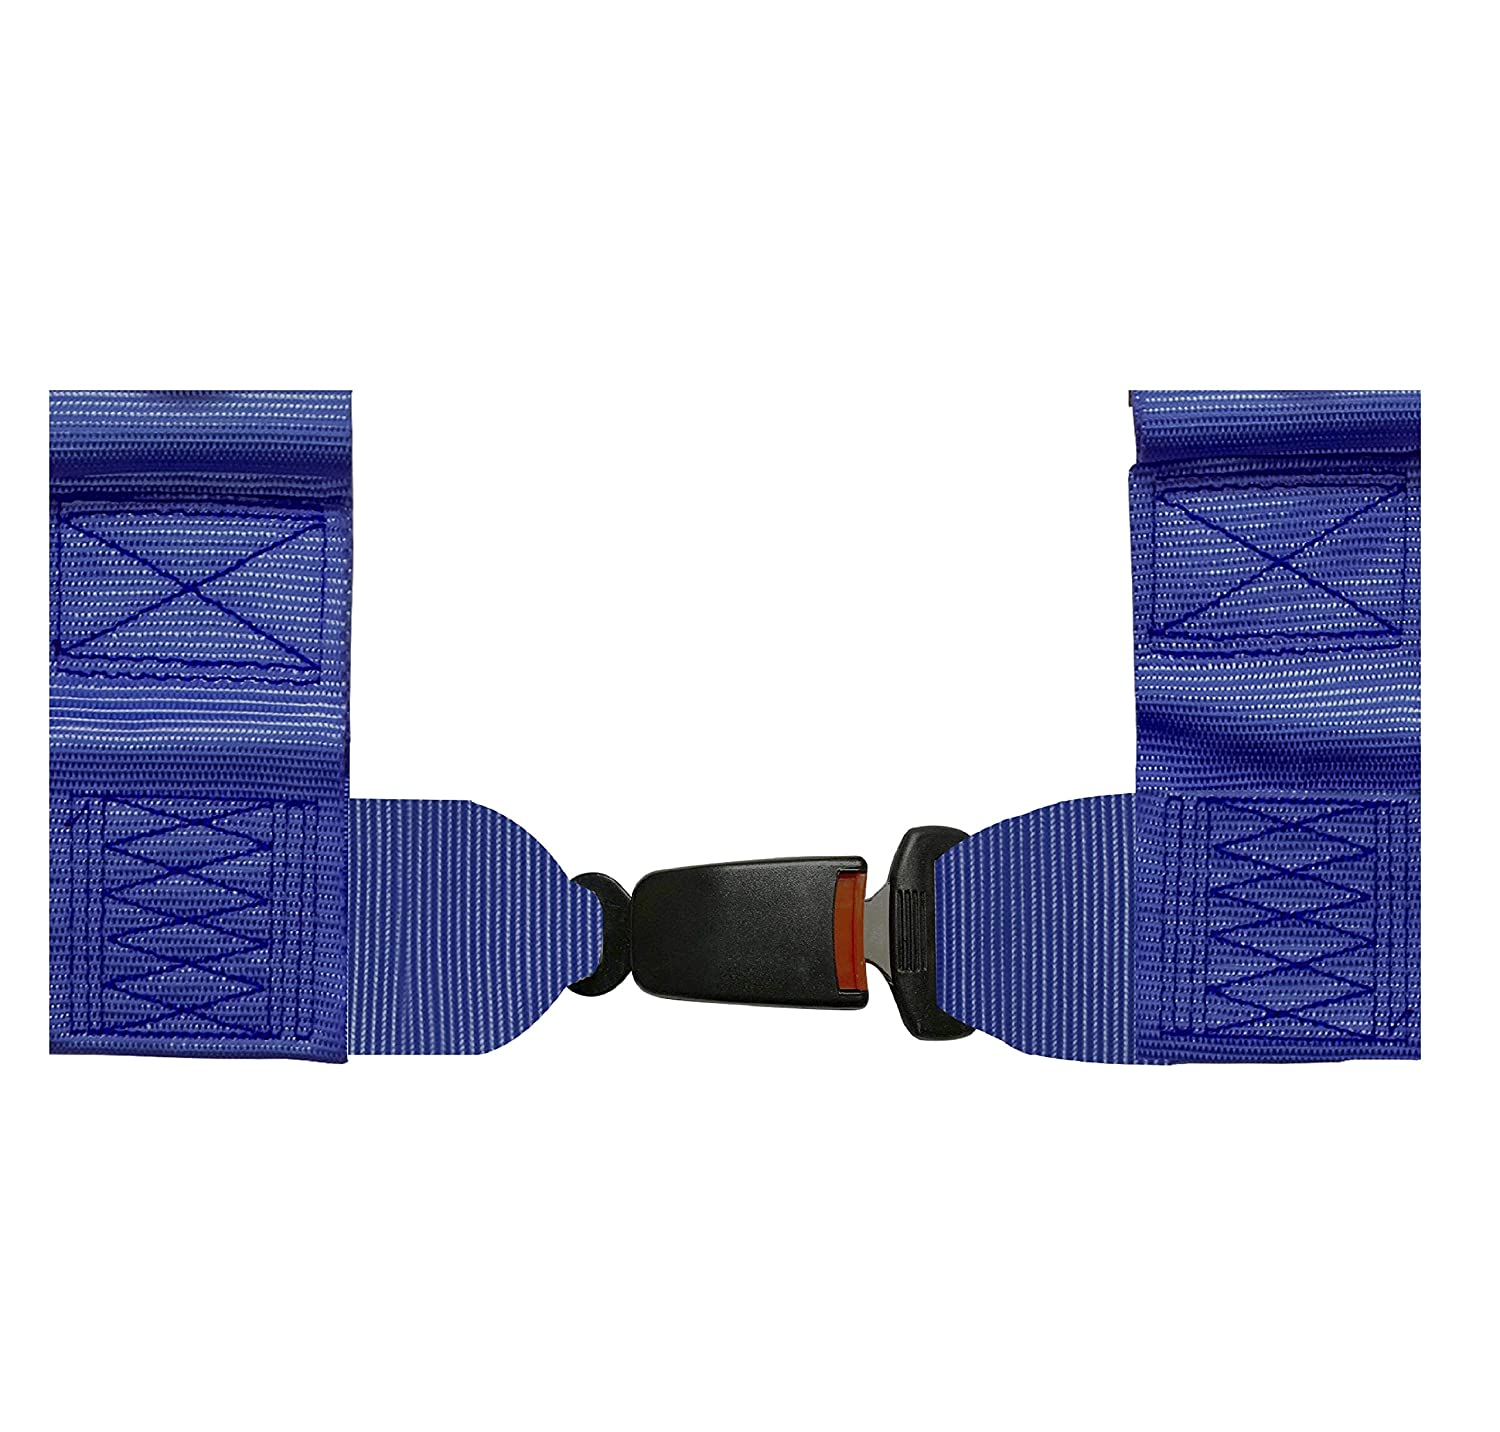 "OFF ROAD SIDE BY SIDE 2/"" SEAT BELT HARNESS RACING 4 POINT LATCH BLUE"